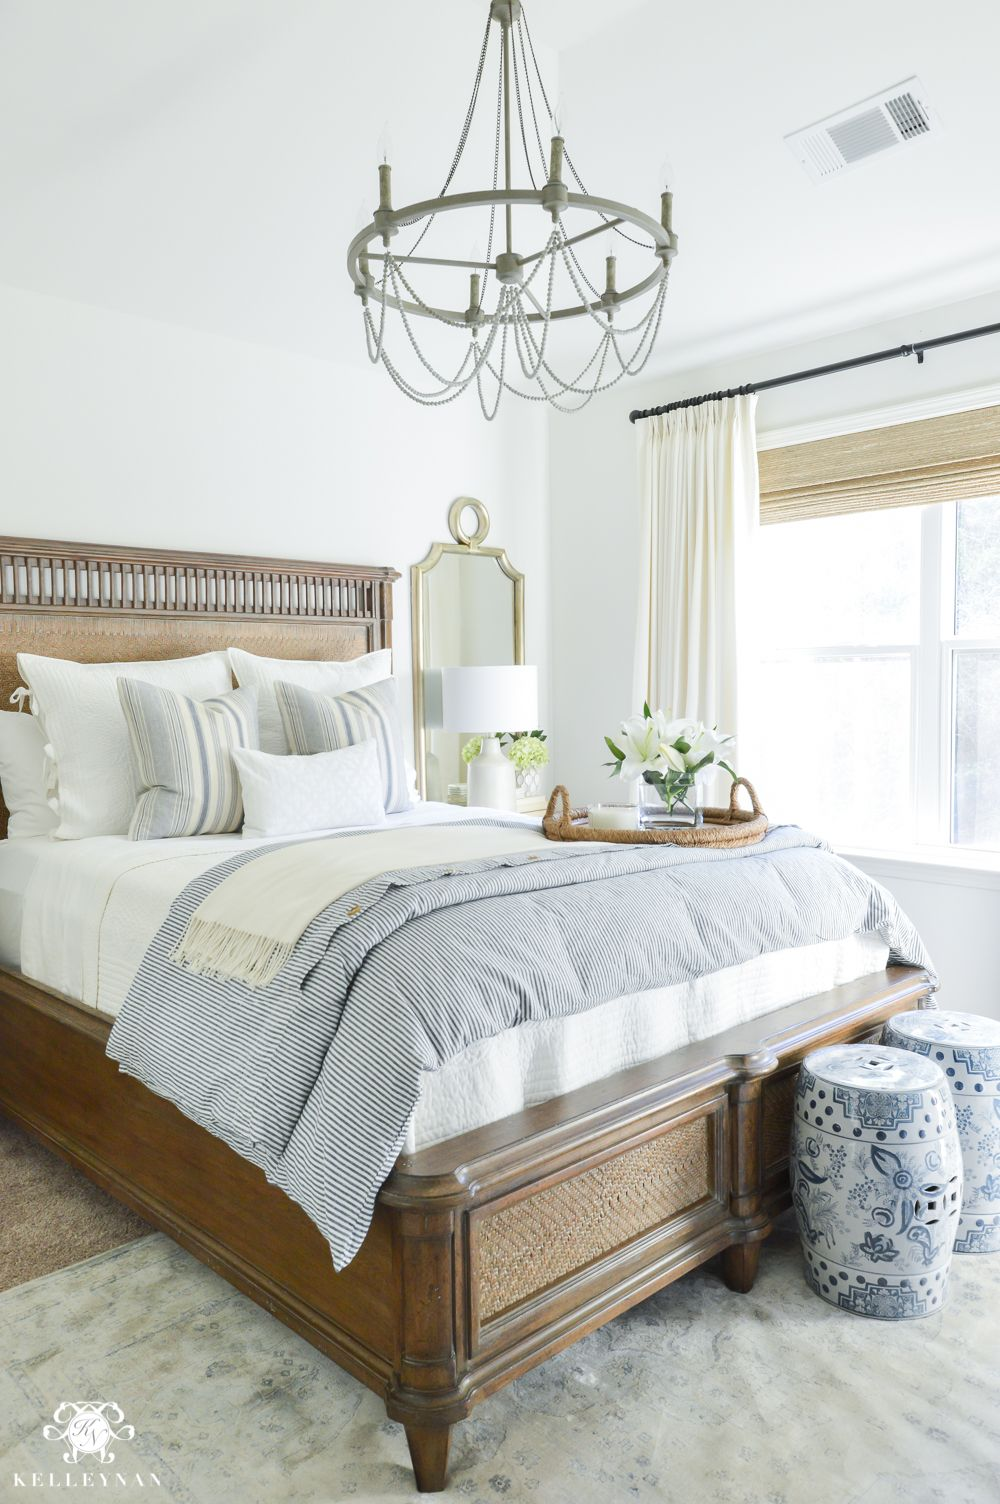 One Room Challenge Blue And White Guest Bedroom Reveal Before And After  Makeover  Guest Bedroom Decorating Ideas